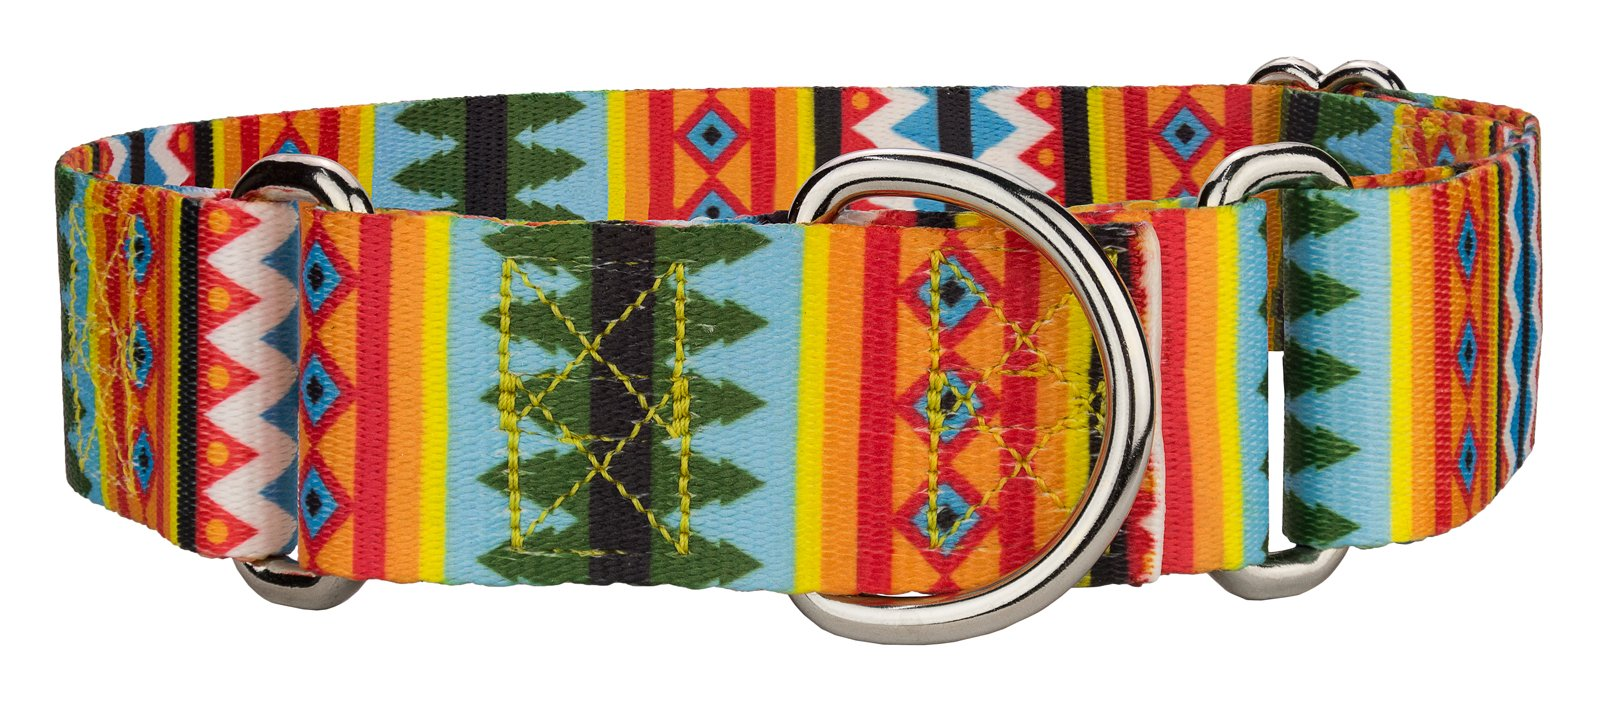 Country Brook Design | 1 1/2 Inch Summer Pines Martingale Dog Collar - Medium